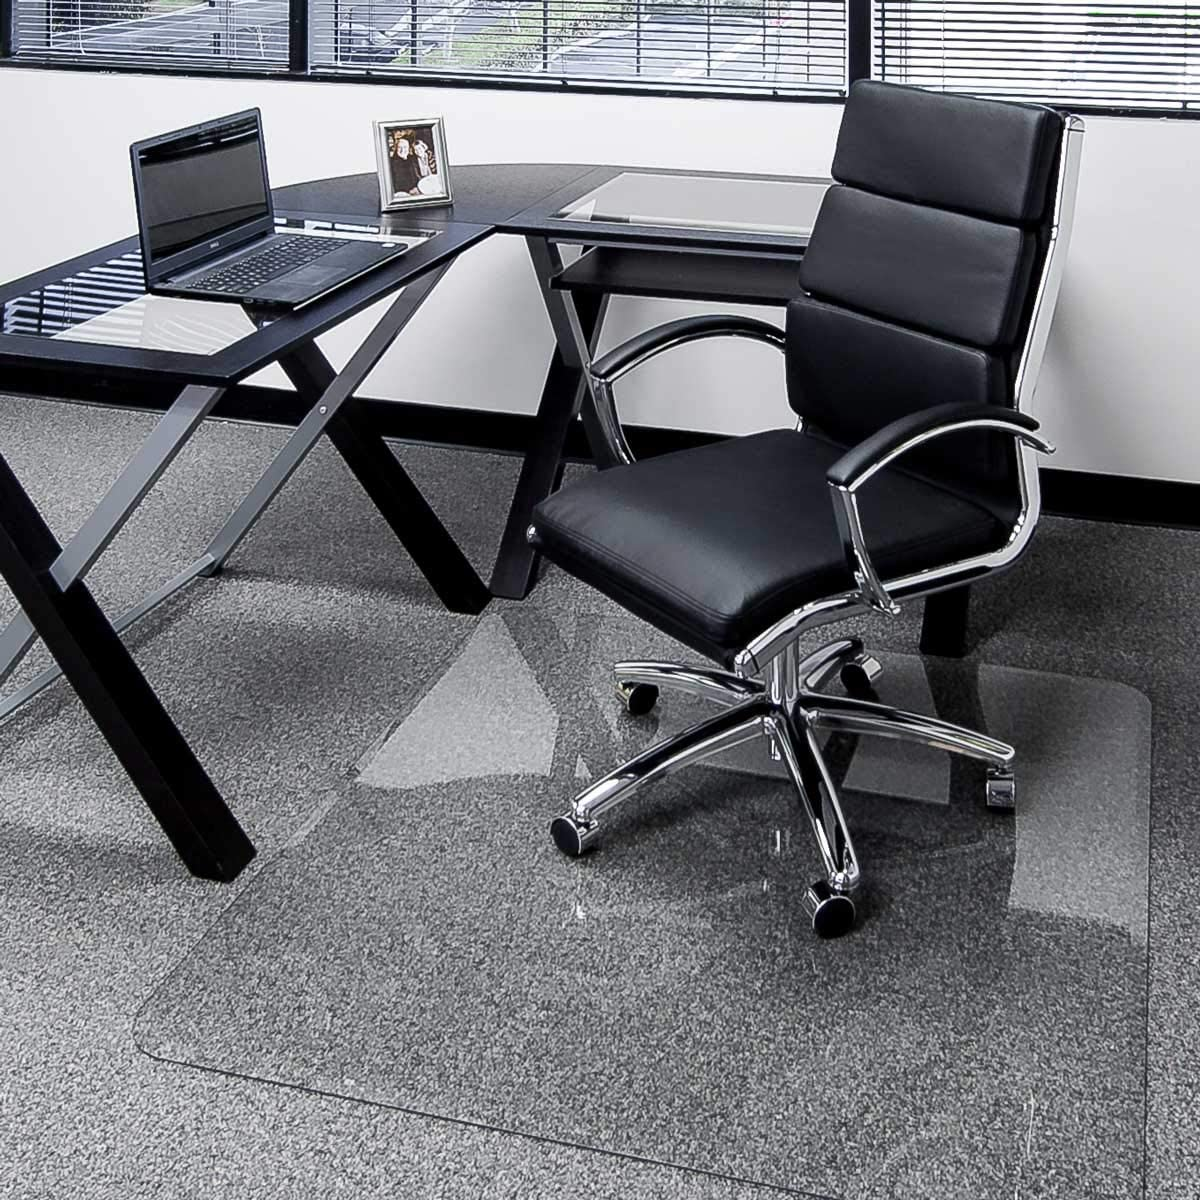 Clearly Innovative Glass Chair Mat with Beveled Edge, 34 x 39 , 1 4 Thick Clear Tempered Glass with Easy Roll Beveled Edges Protect Your Home or Office Floor